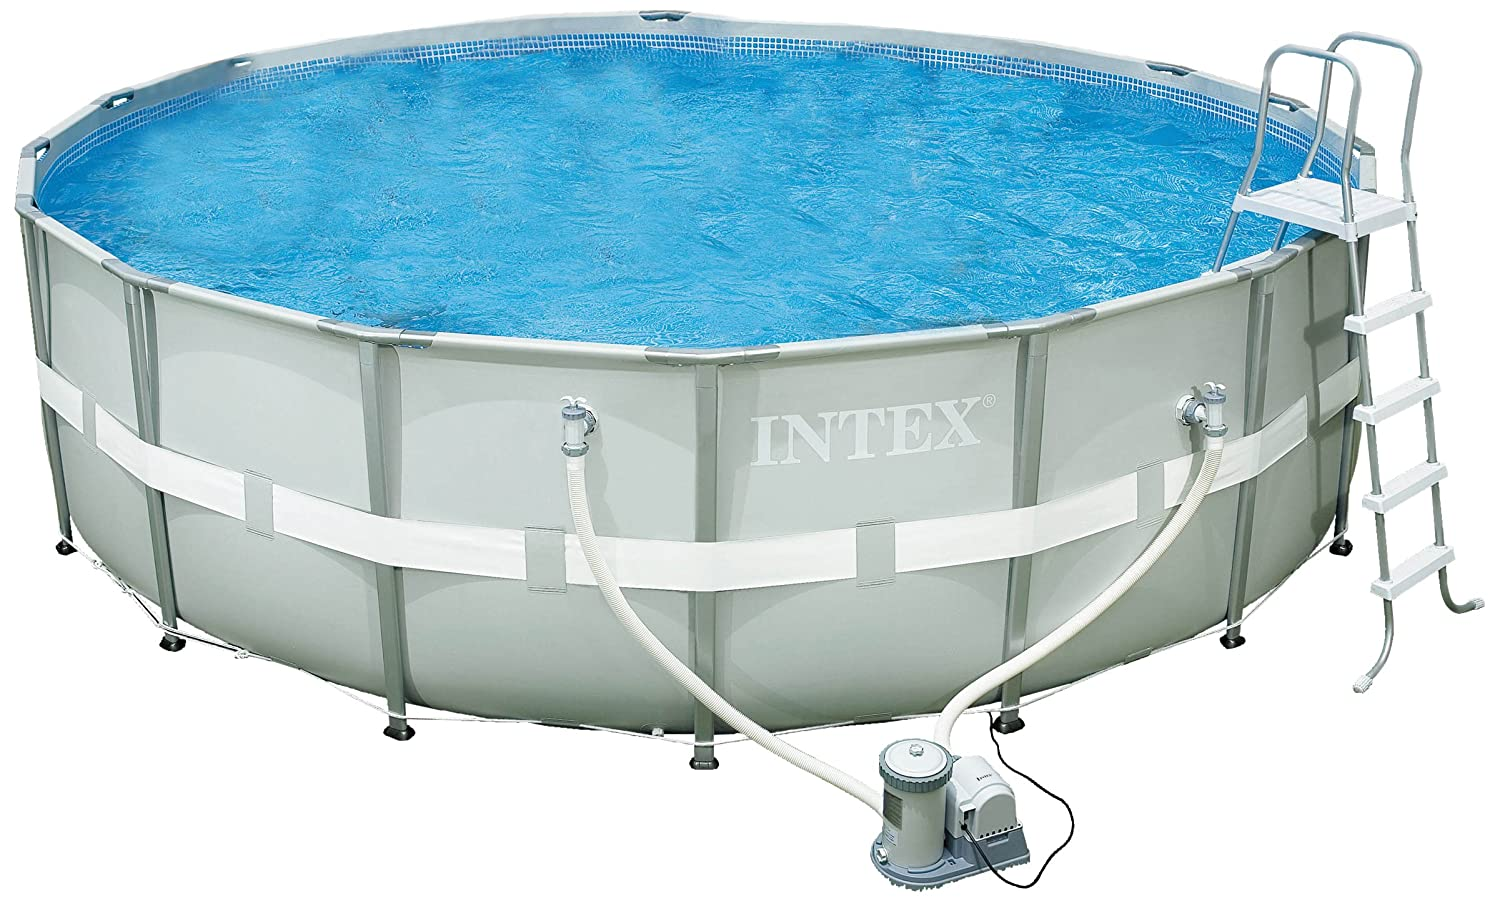 amazoncom intex 18 foot by 52 inch ultra frame pool set garden outdoor - Intex Pools